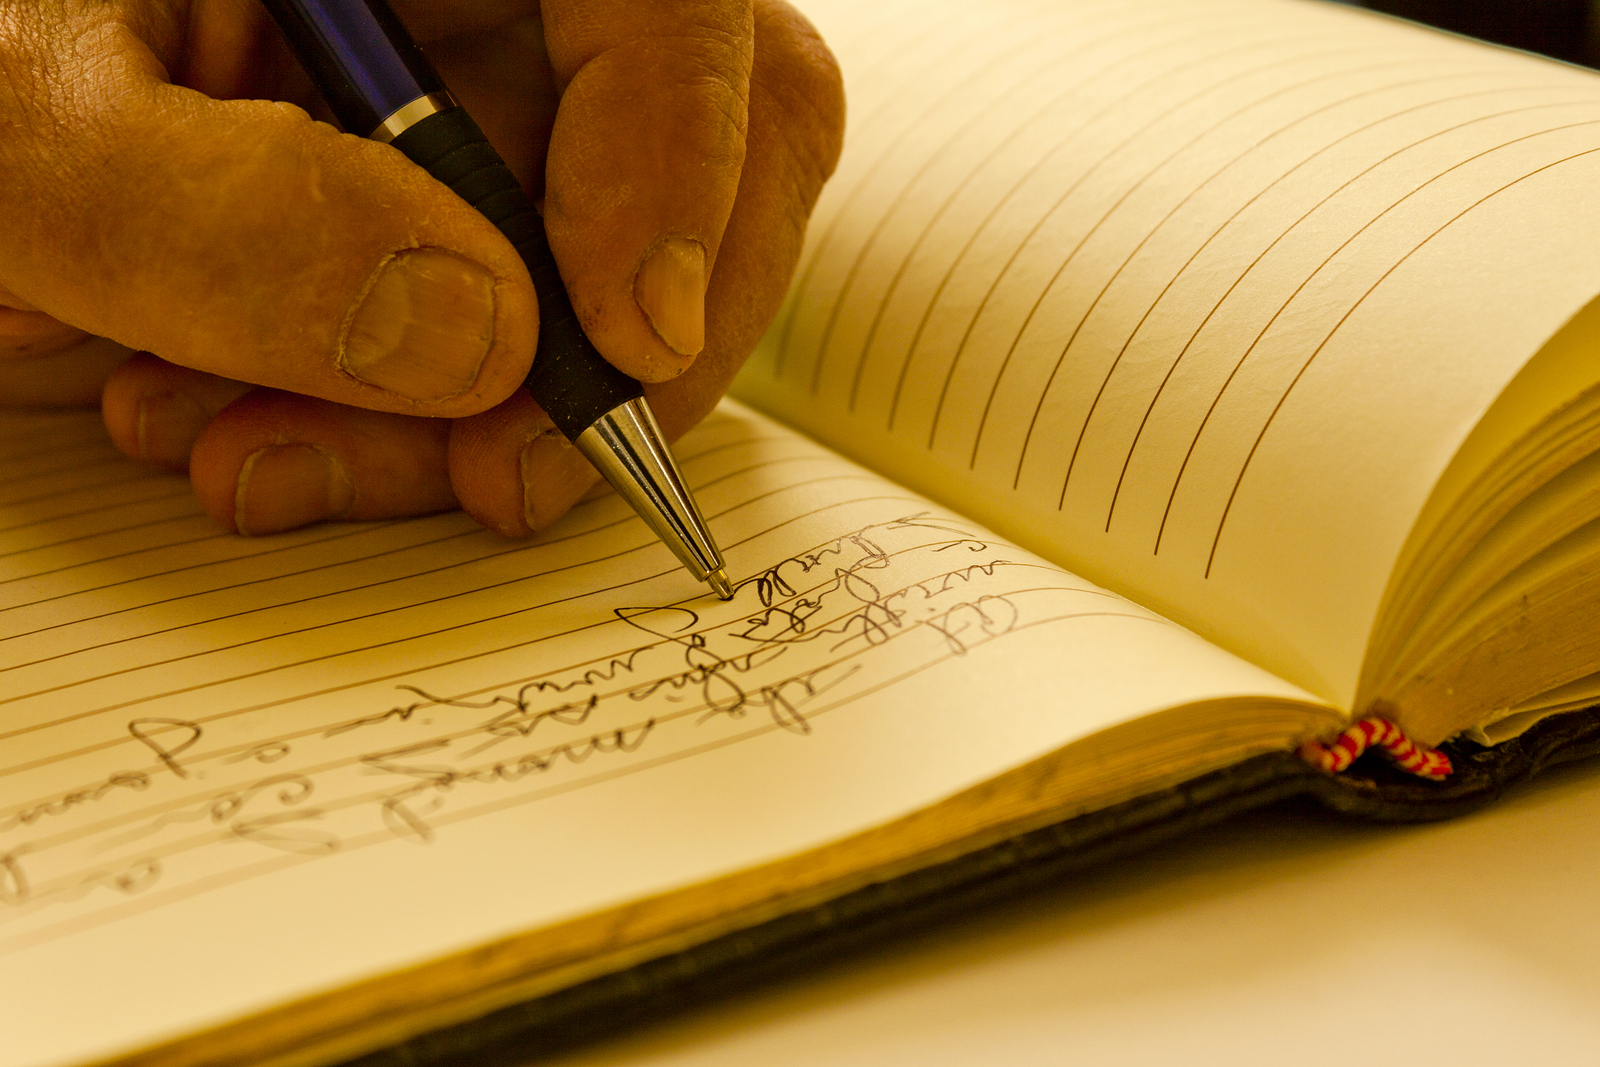 Tracking Your Progressive Overload -- Writing in Journal